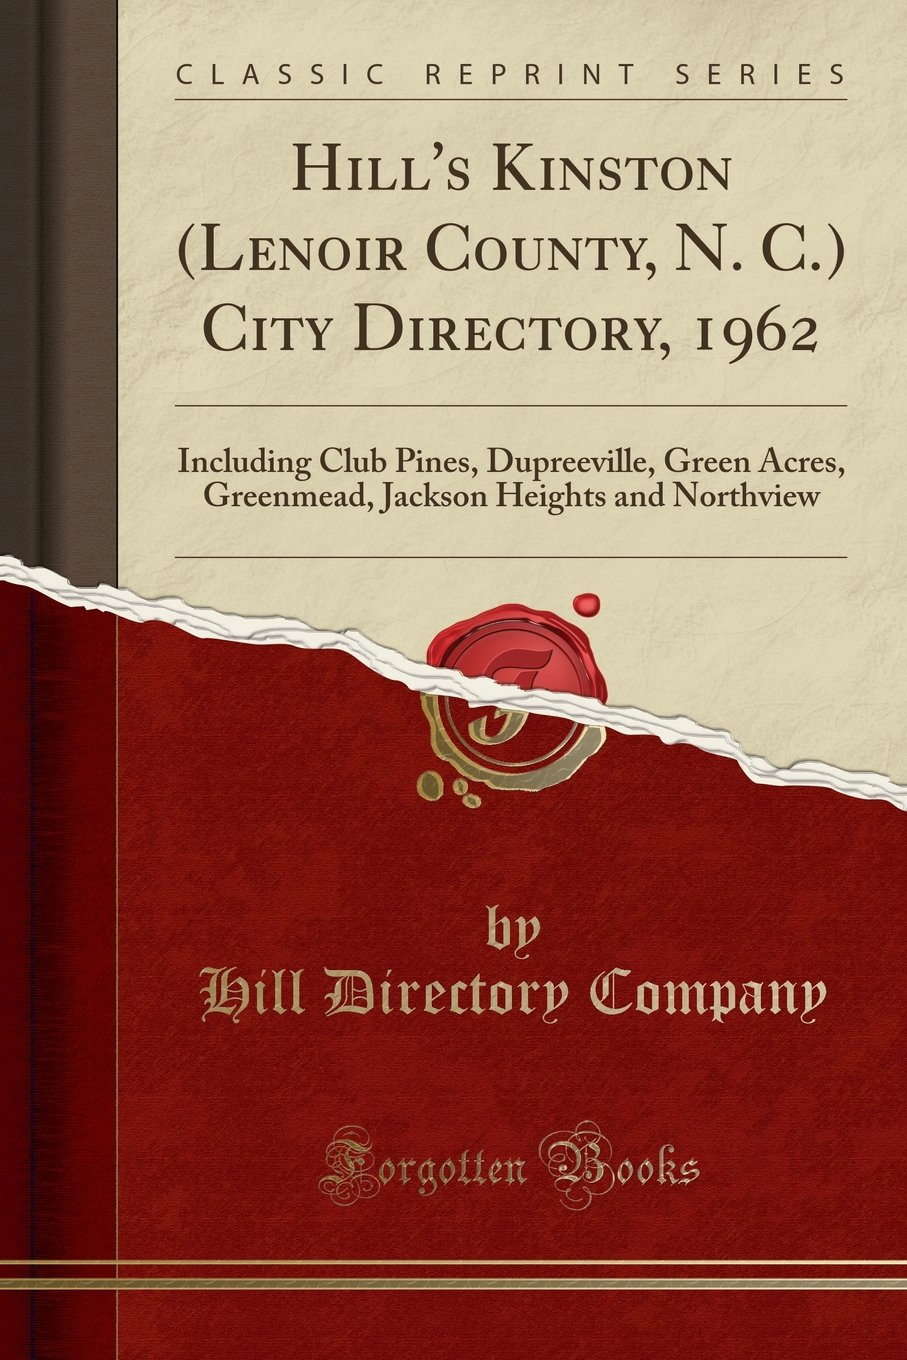 Hill's Kinston (Lenoir County, N. C.) City Directory, 1962: Including Club Pines, Dupreeville, Green Acres, Greenmead, Jackson Heights and Northview (Classic Reprint) pdf epub